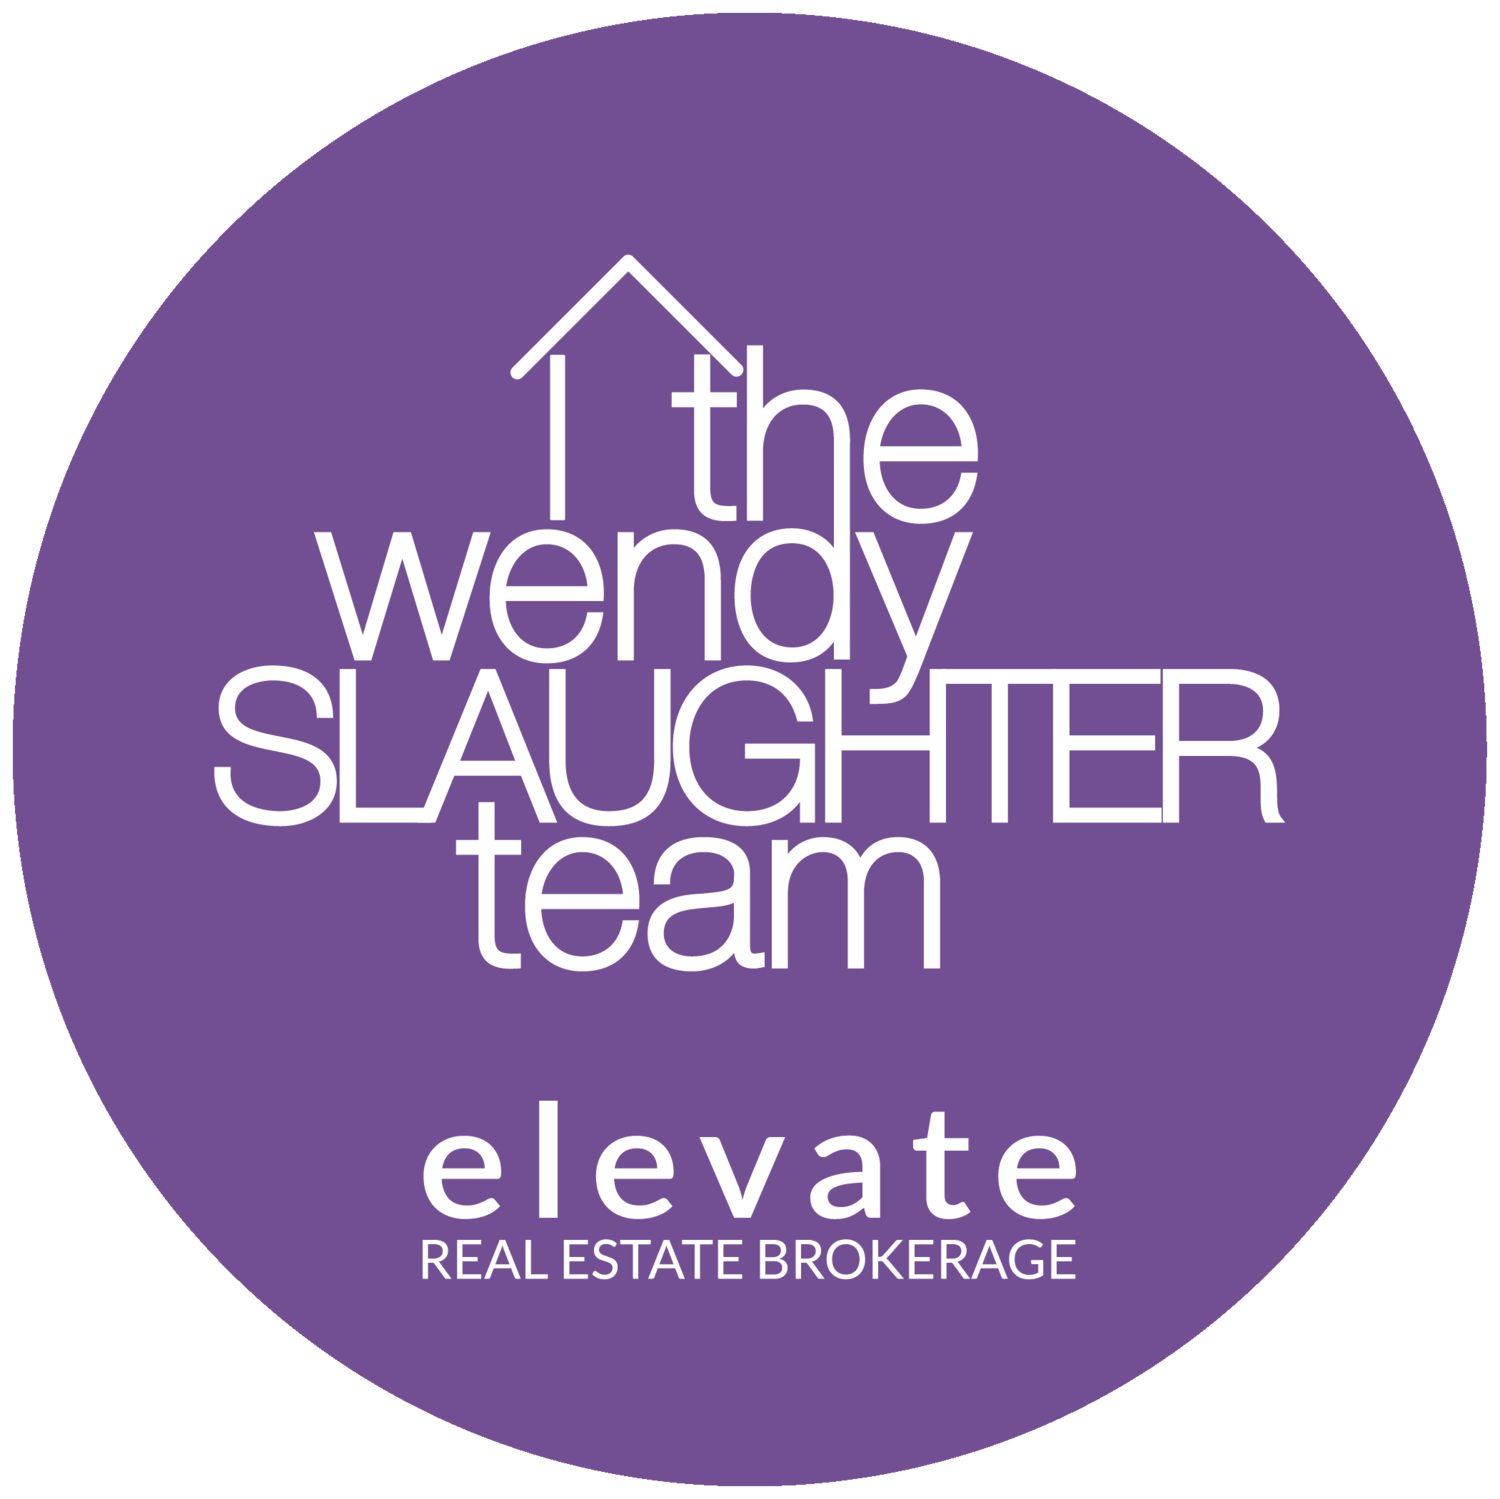 The Wendy Slaughter Team at Elevate Real Estate Brokerage